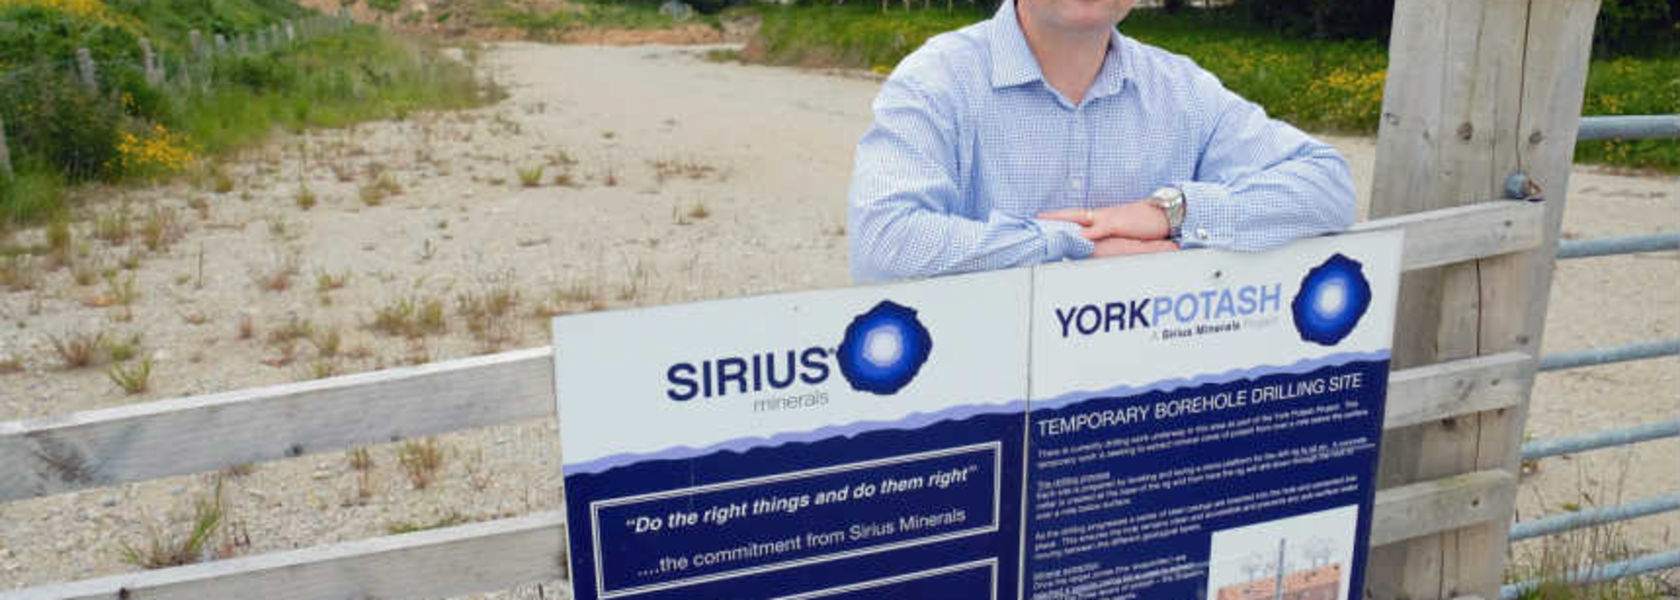 Did Sirius pinch the risk capital?